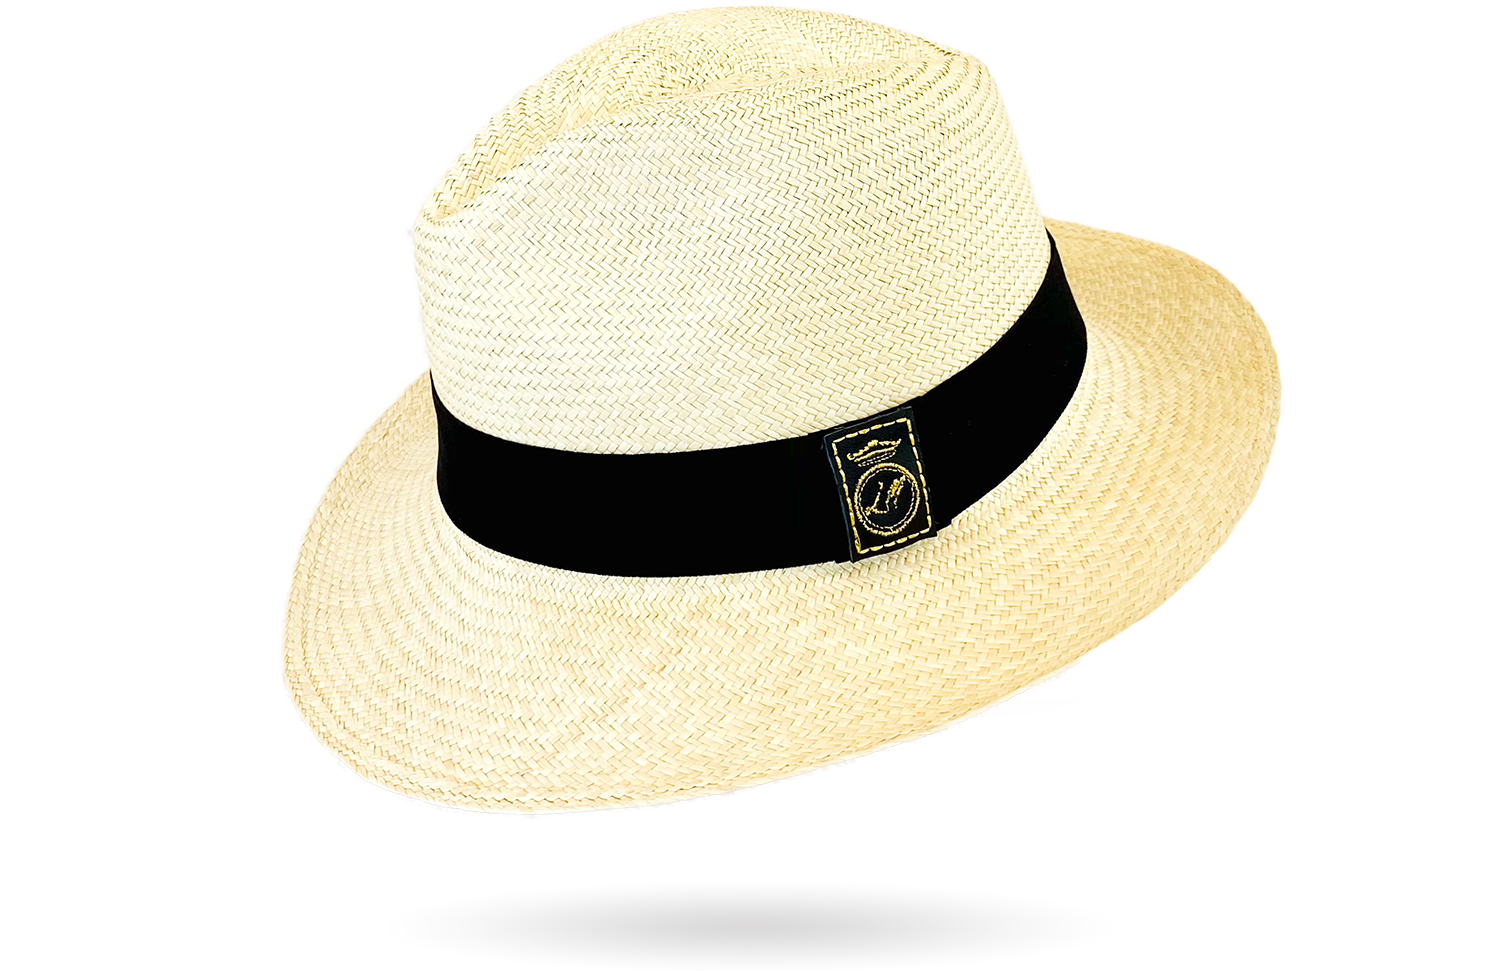 urban panama hat with leather